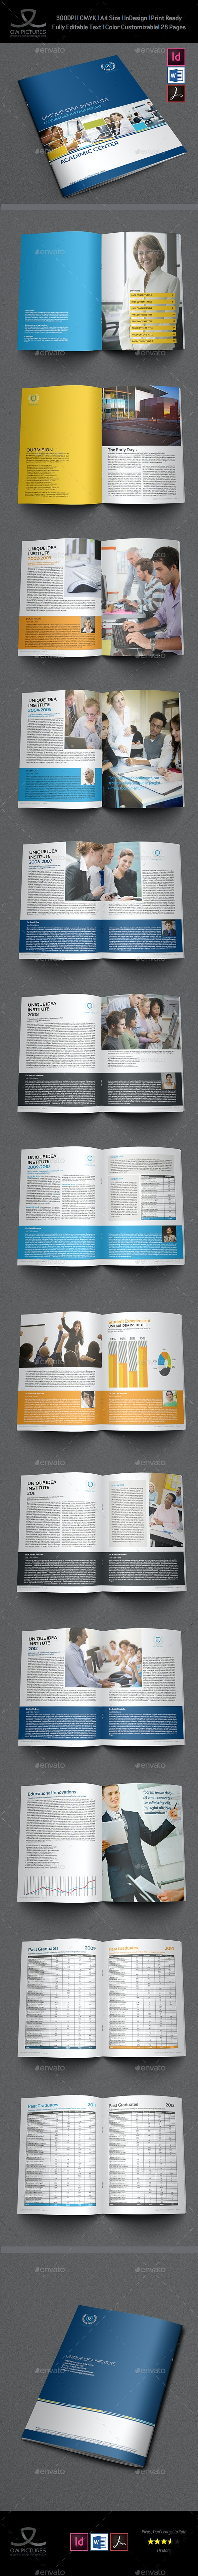 Training Company Brochure Template - 28 Pages - Brochures Print Templates